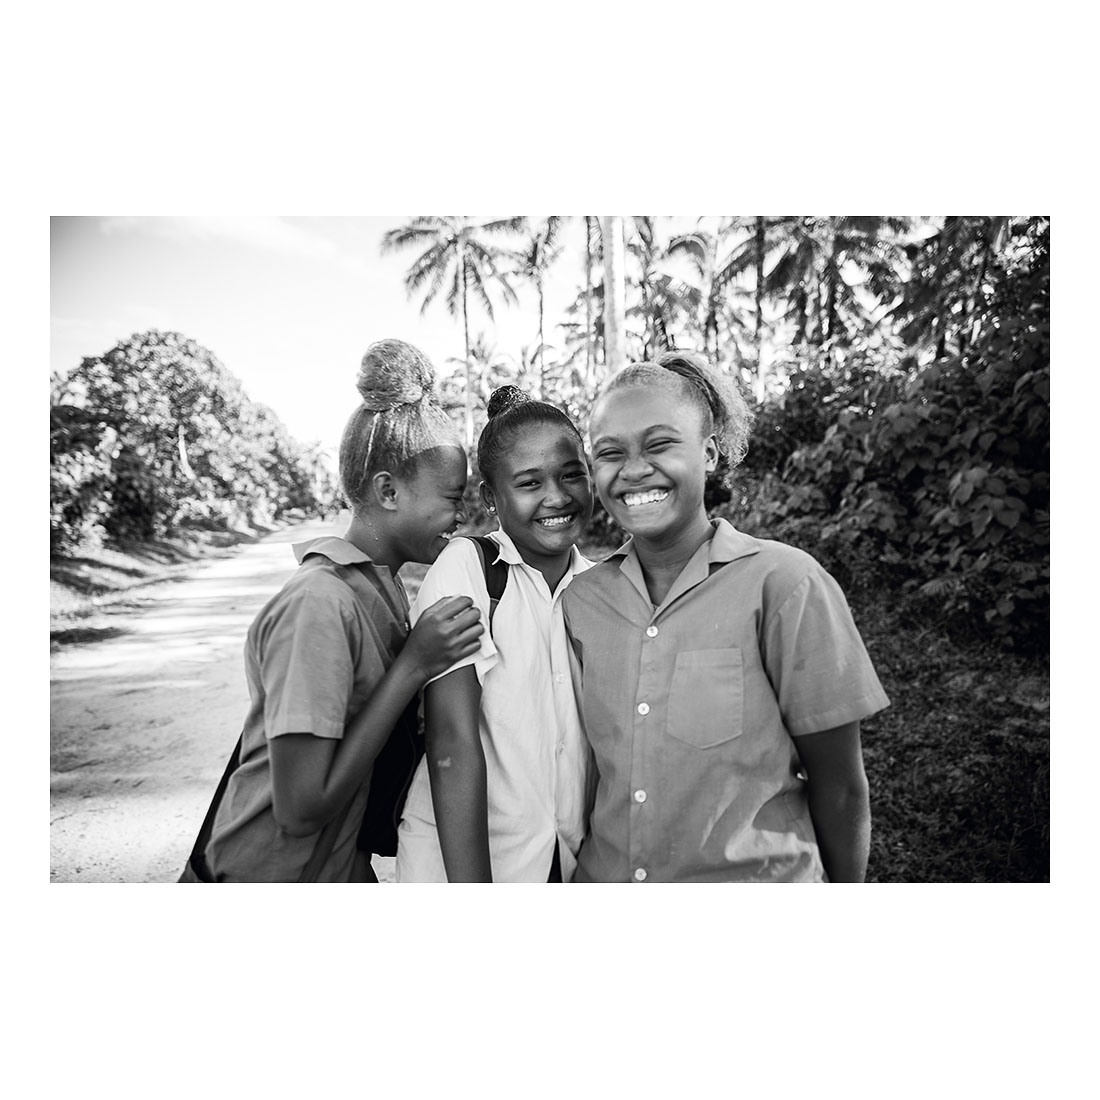 #40 Asimana, Malaita, Solomon Islands  (2016).  Archival pigment print on Ilford paper. Exhibition print 24cm x 36cm. Different sizes available.